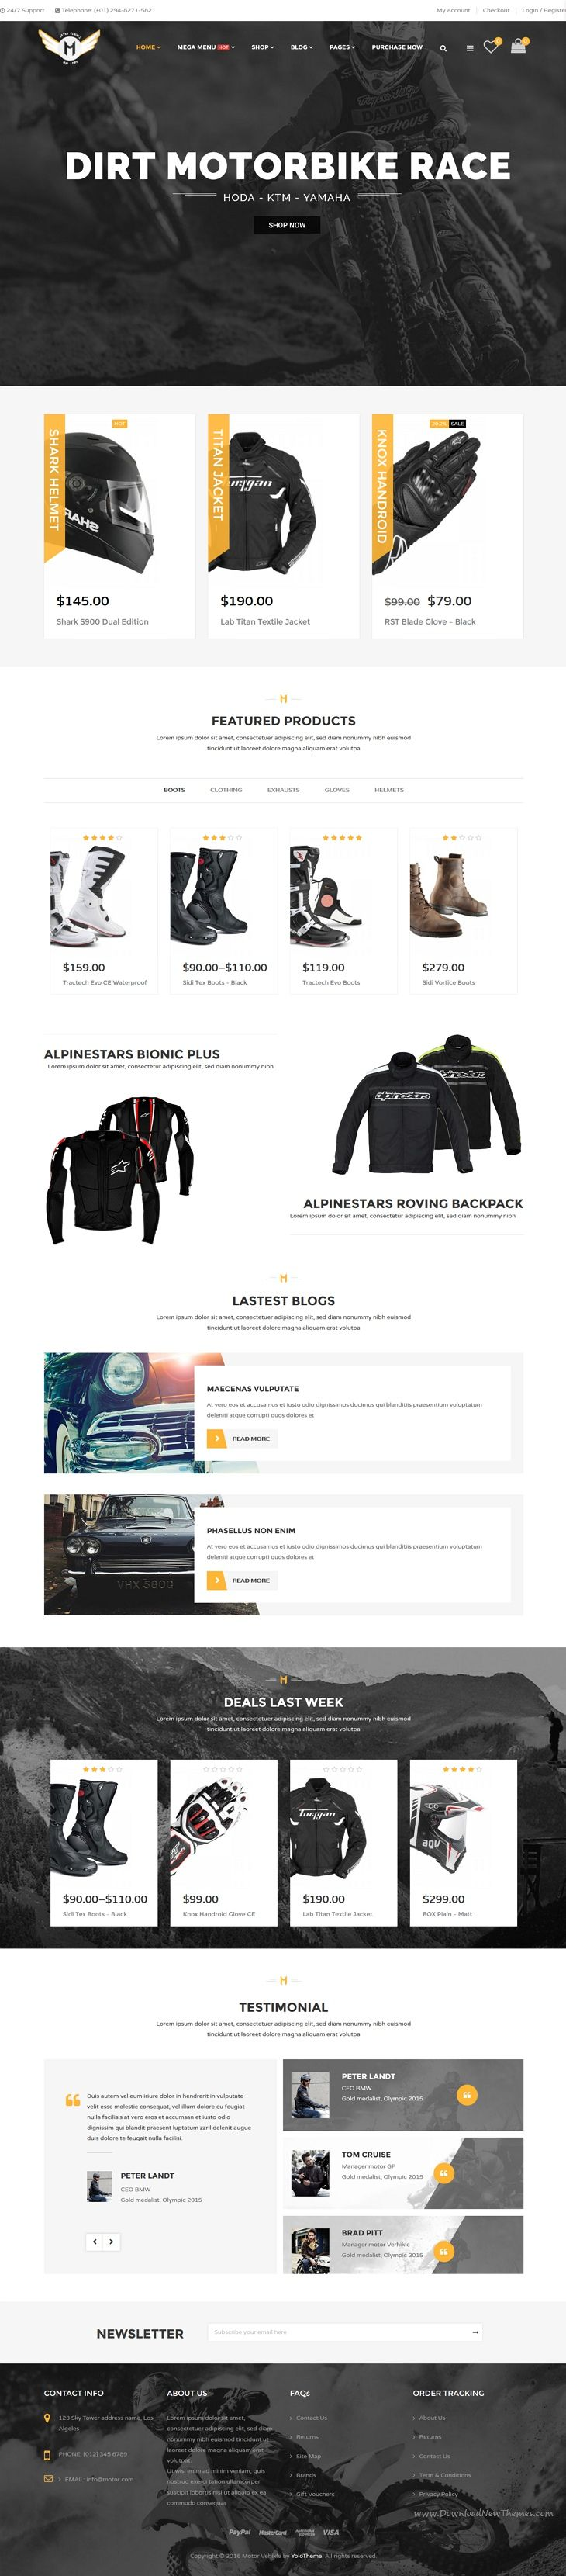 Motor Vehikal is a premium #WordPress Theme for #motorcycle, car or bicycle online #stores website with 10+ Home Pages, 05 product page, 03+ blog page, 09 header styles, 11 footer styles and more Download Now➝ https://themeforest.net/item/motor-vehikal-motorcycle-online-store-wordpress-theme/15895102?ref=Datasata